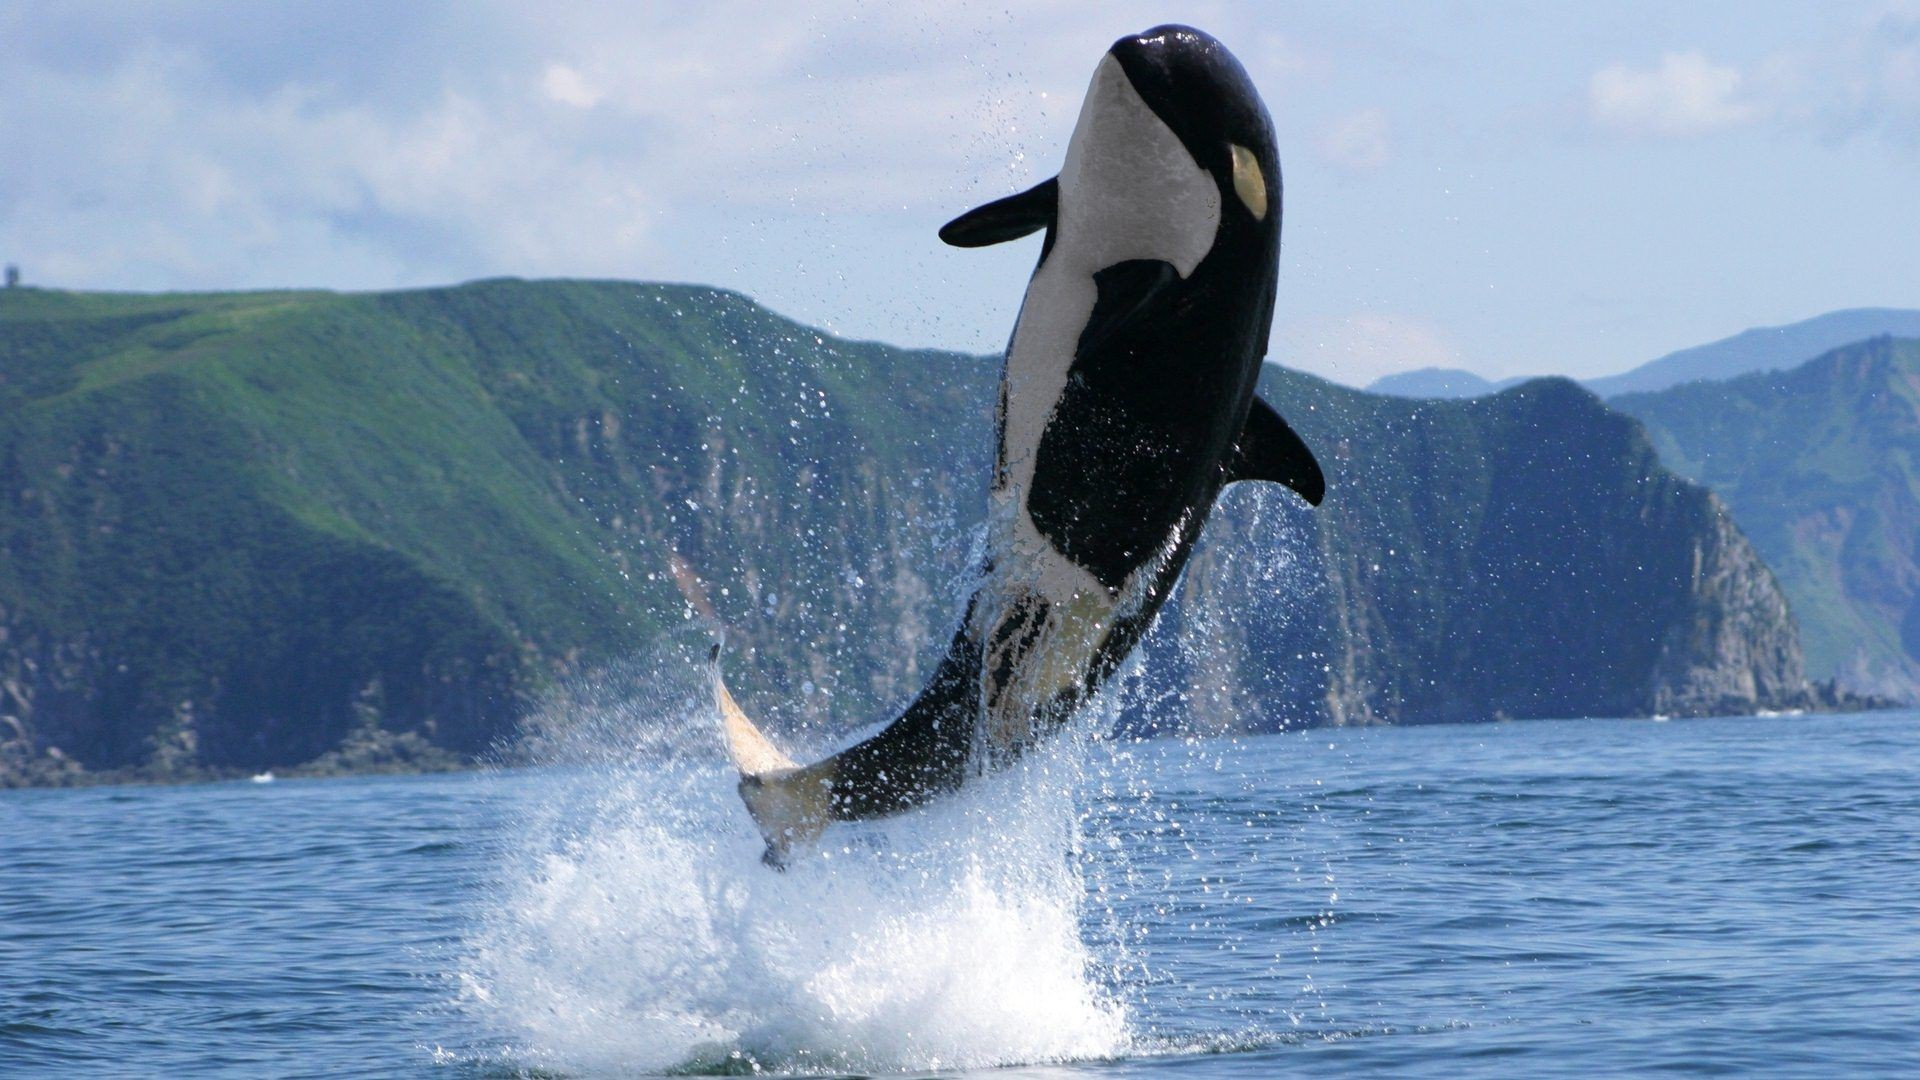 1920x1080 Killer Whales Wallpapers High Quality Download Free 1600A 1069 Pictures Of